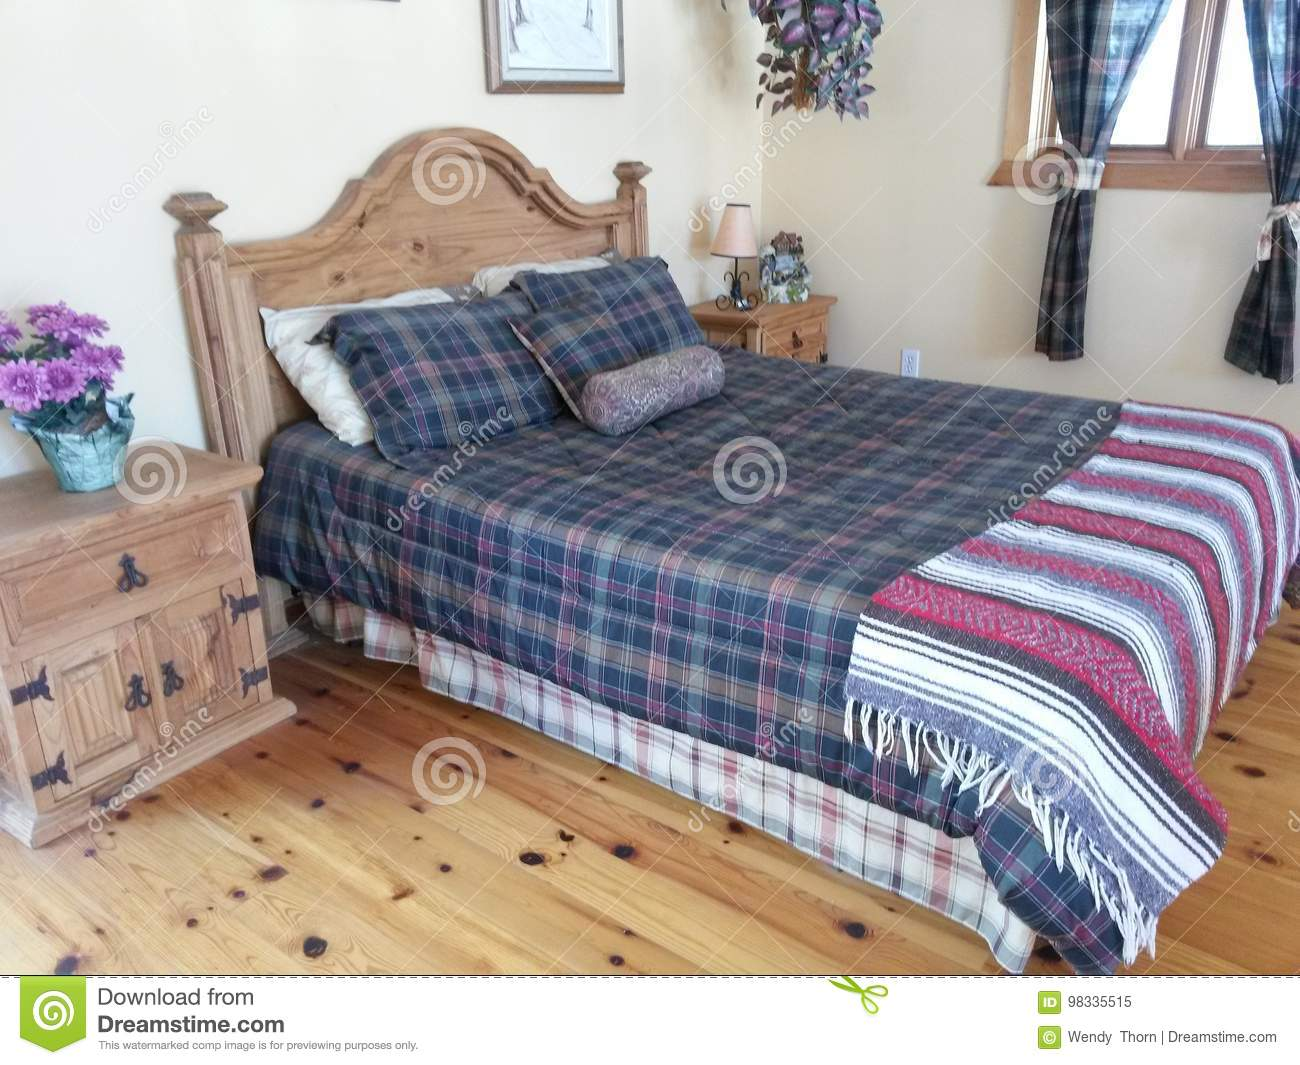 https www dreamstime com stock photo modern bedroom furniture solid wood bed floors contemporary suite night stand table plaid pillow shams head board knotty pine image98335515